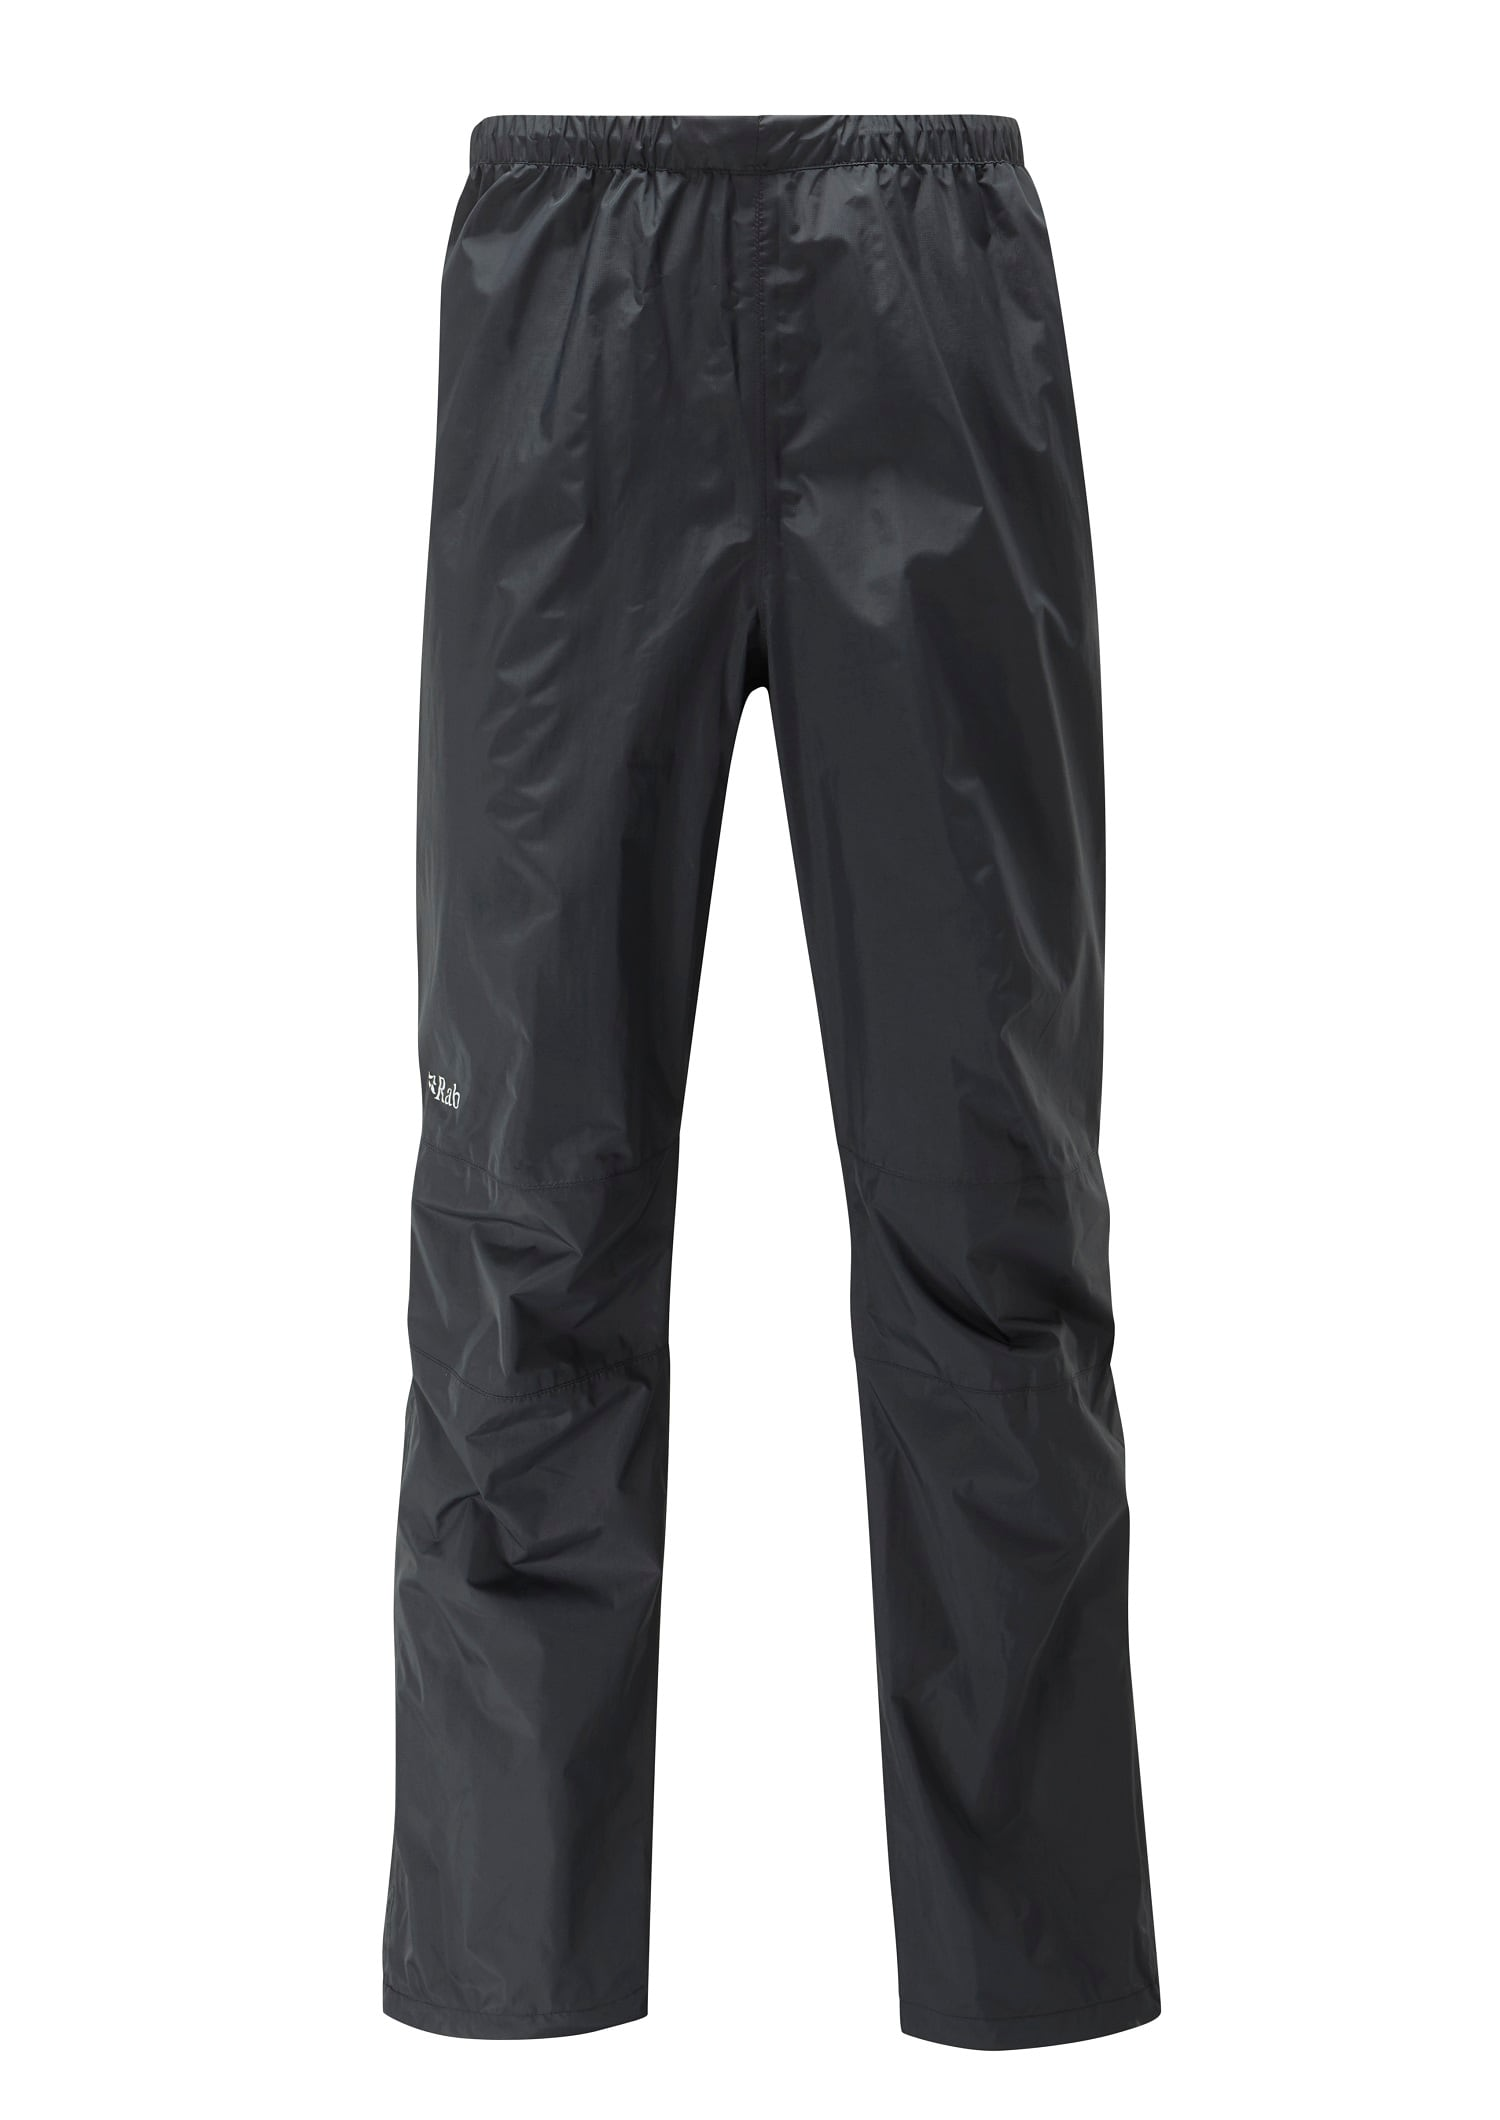 RAB Downpour Pants, M's